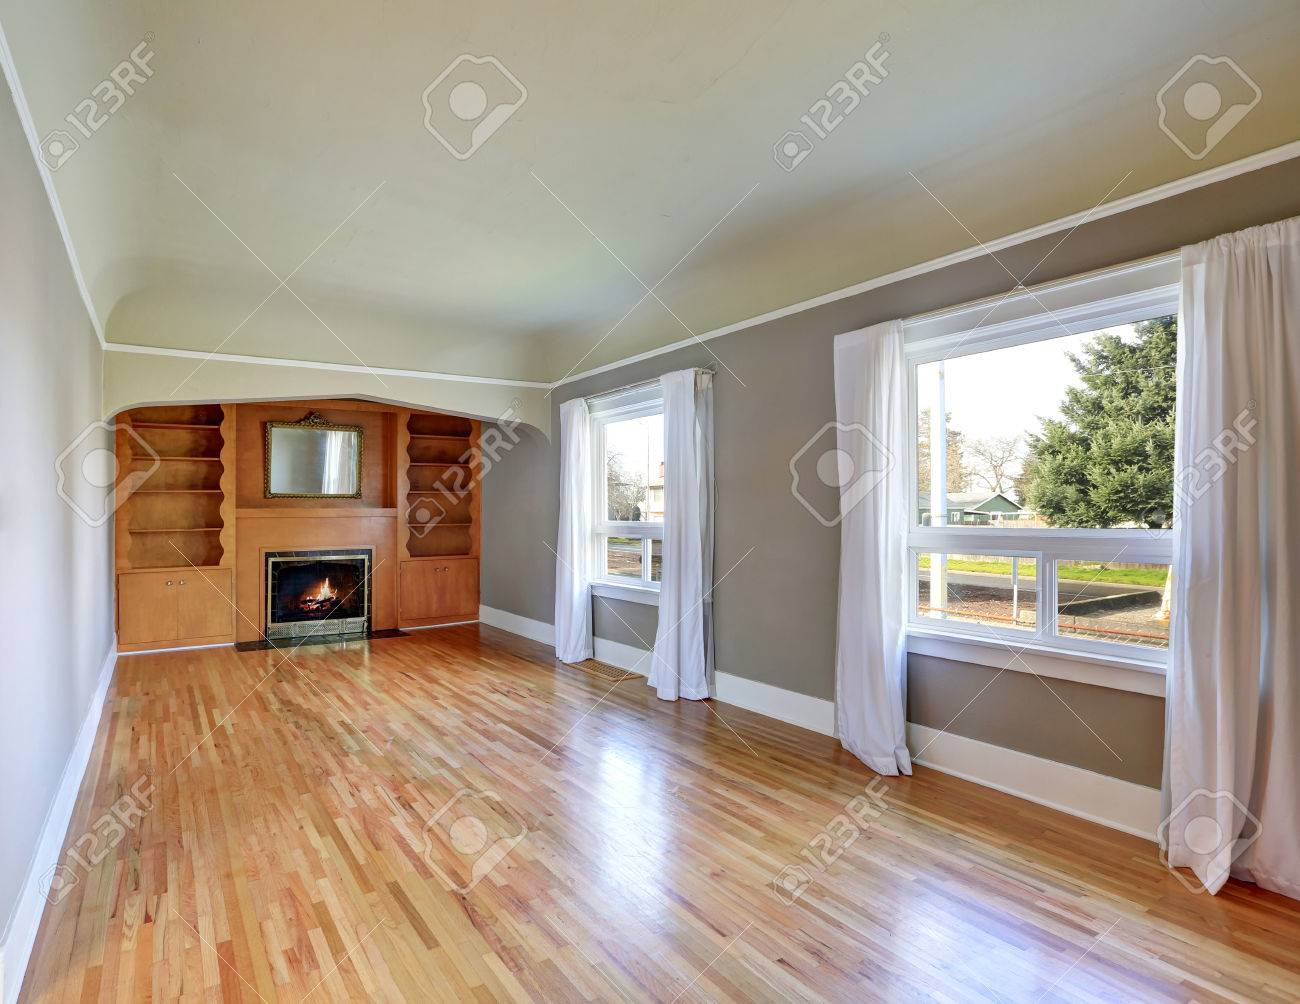 unfurnished living room interior in old craftsman house. gray